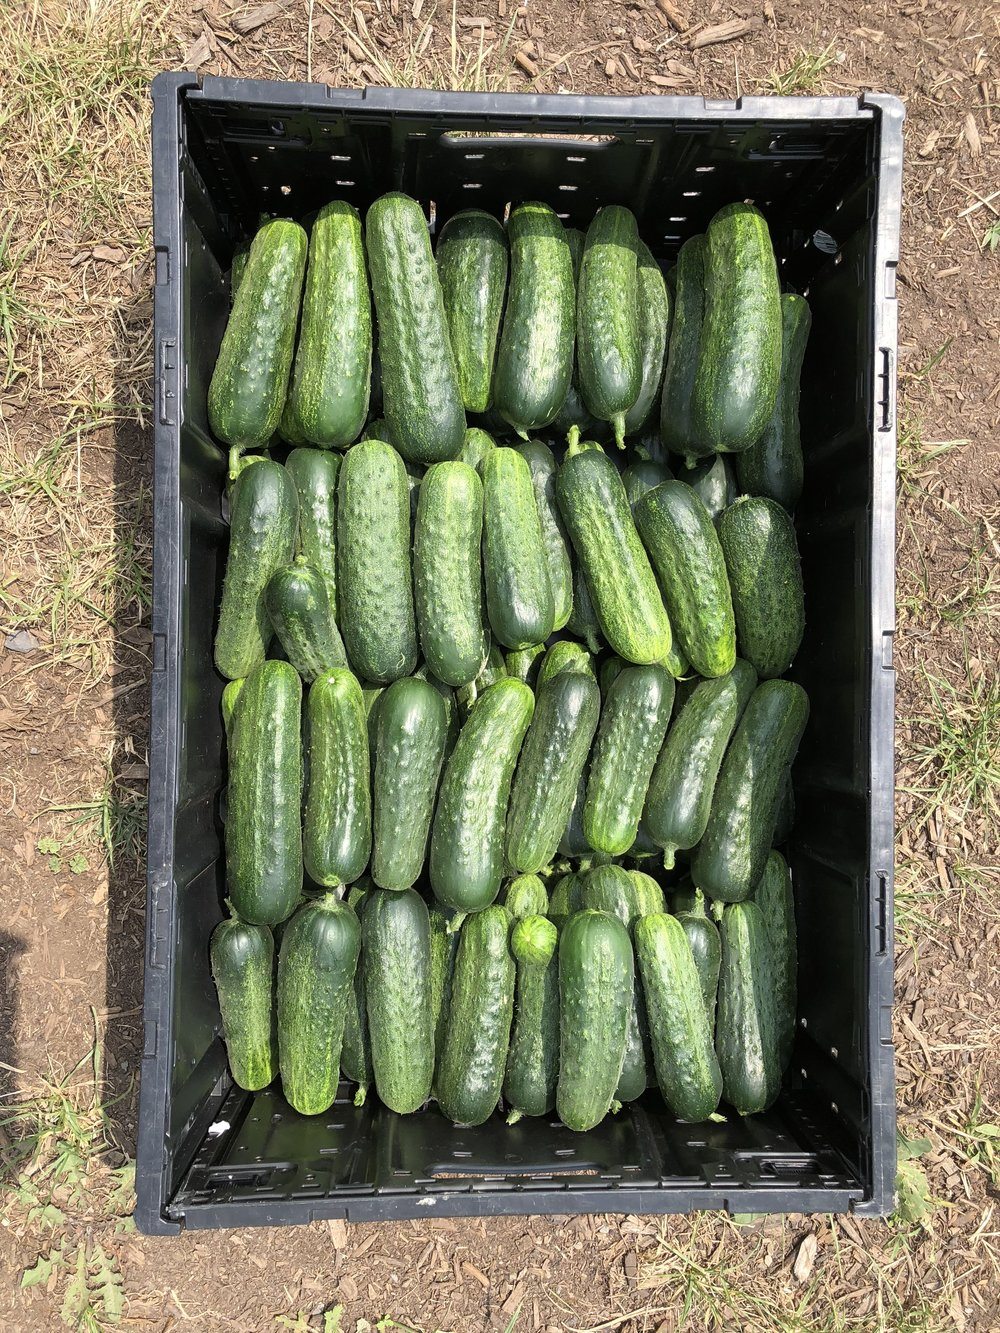 Seedless pickling cucumbers (pickles) from the high tunnel.